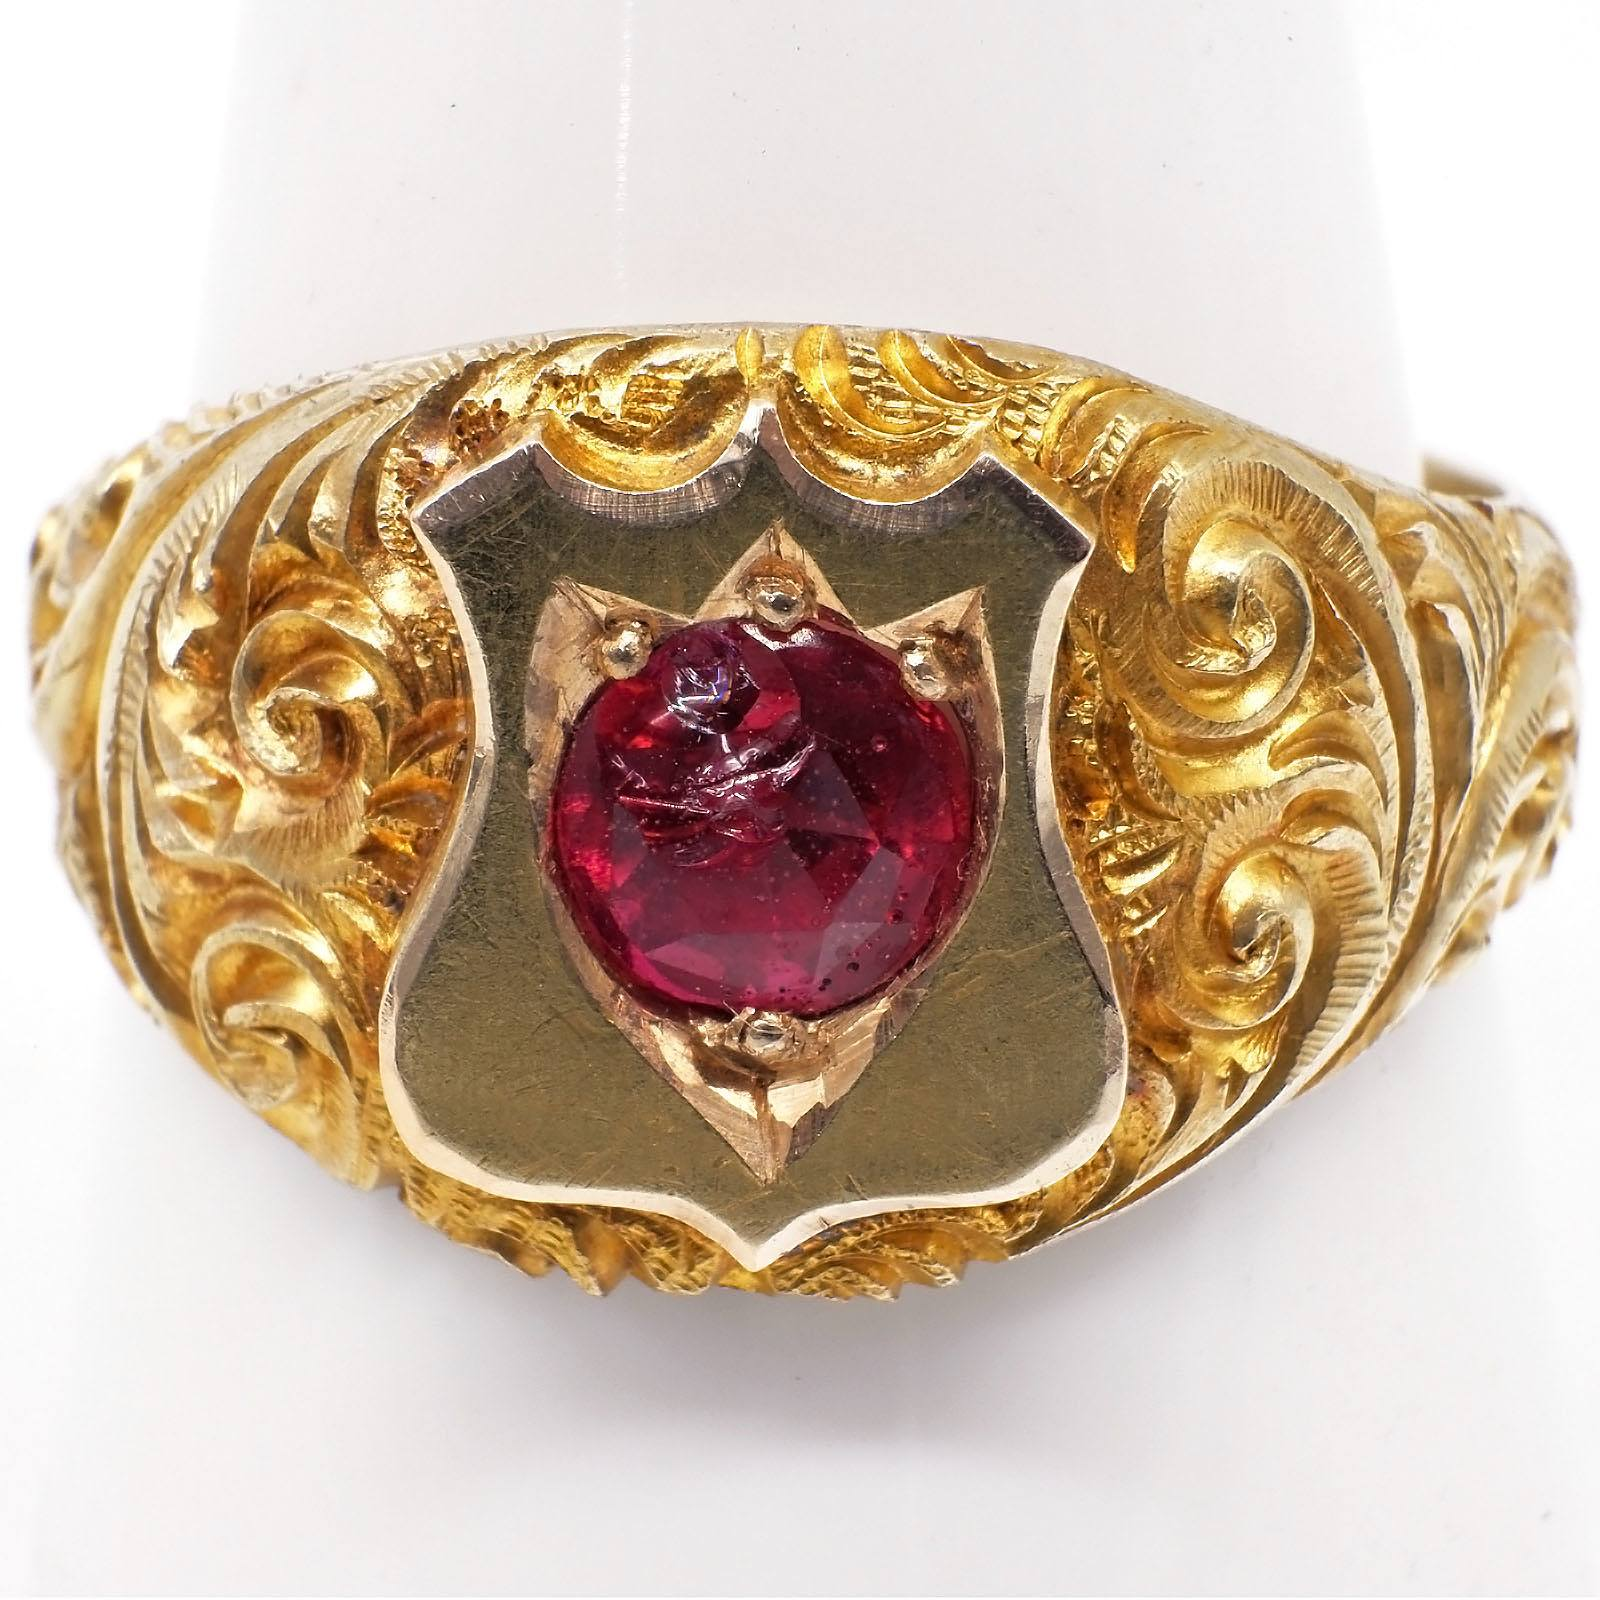 'Antique 22ct Yellow Gold Gents Shield Ring with at Centre a Round Garnet Topped Doublet Set into the Shield, Heavily Hand Engraved Finish to Band, 8.2g'